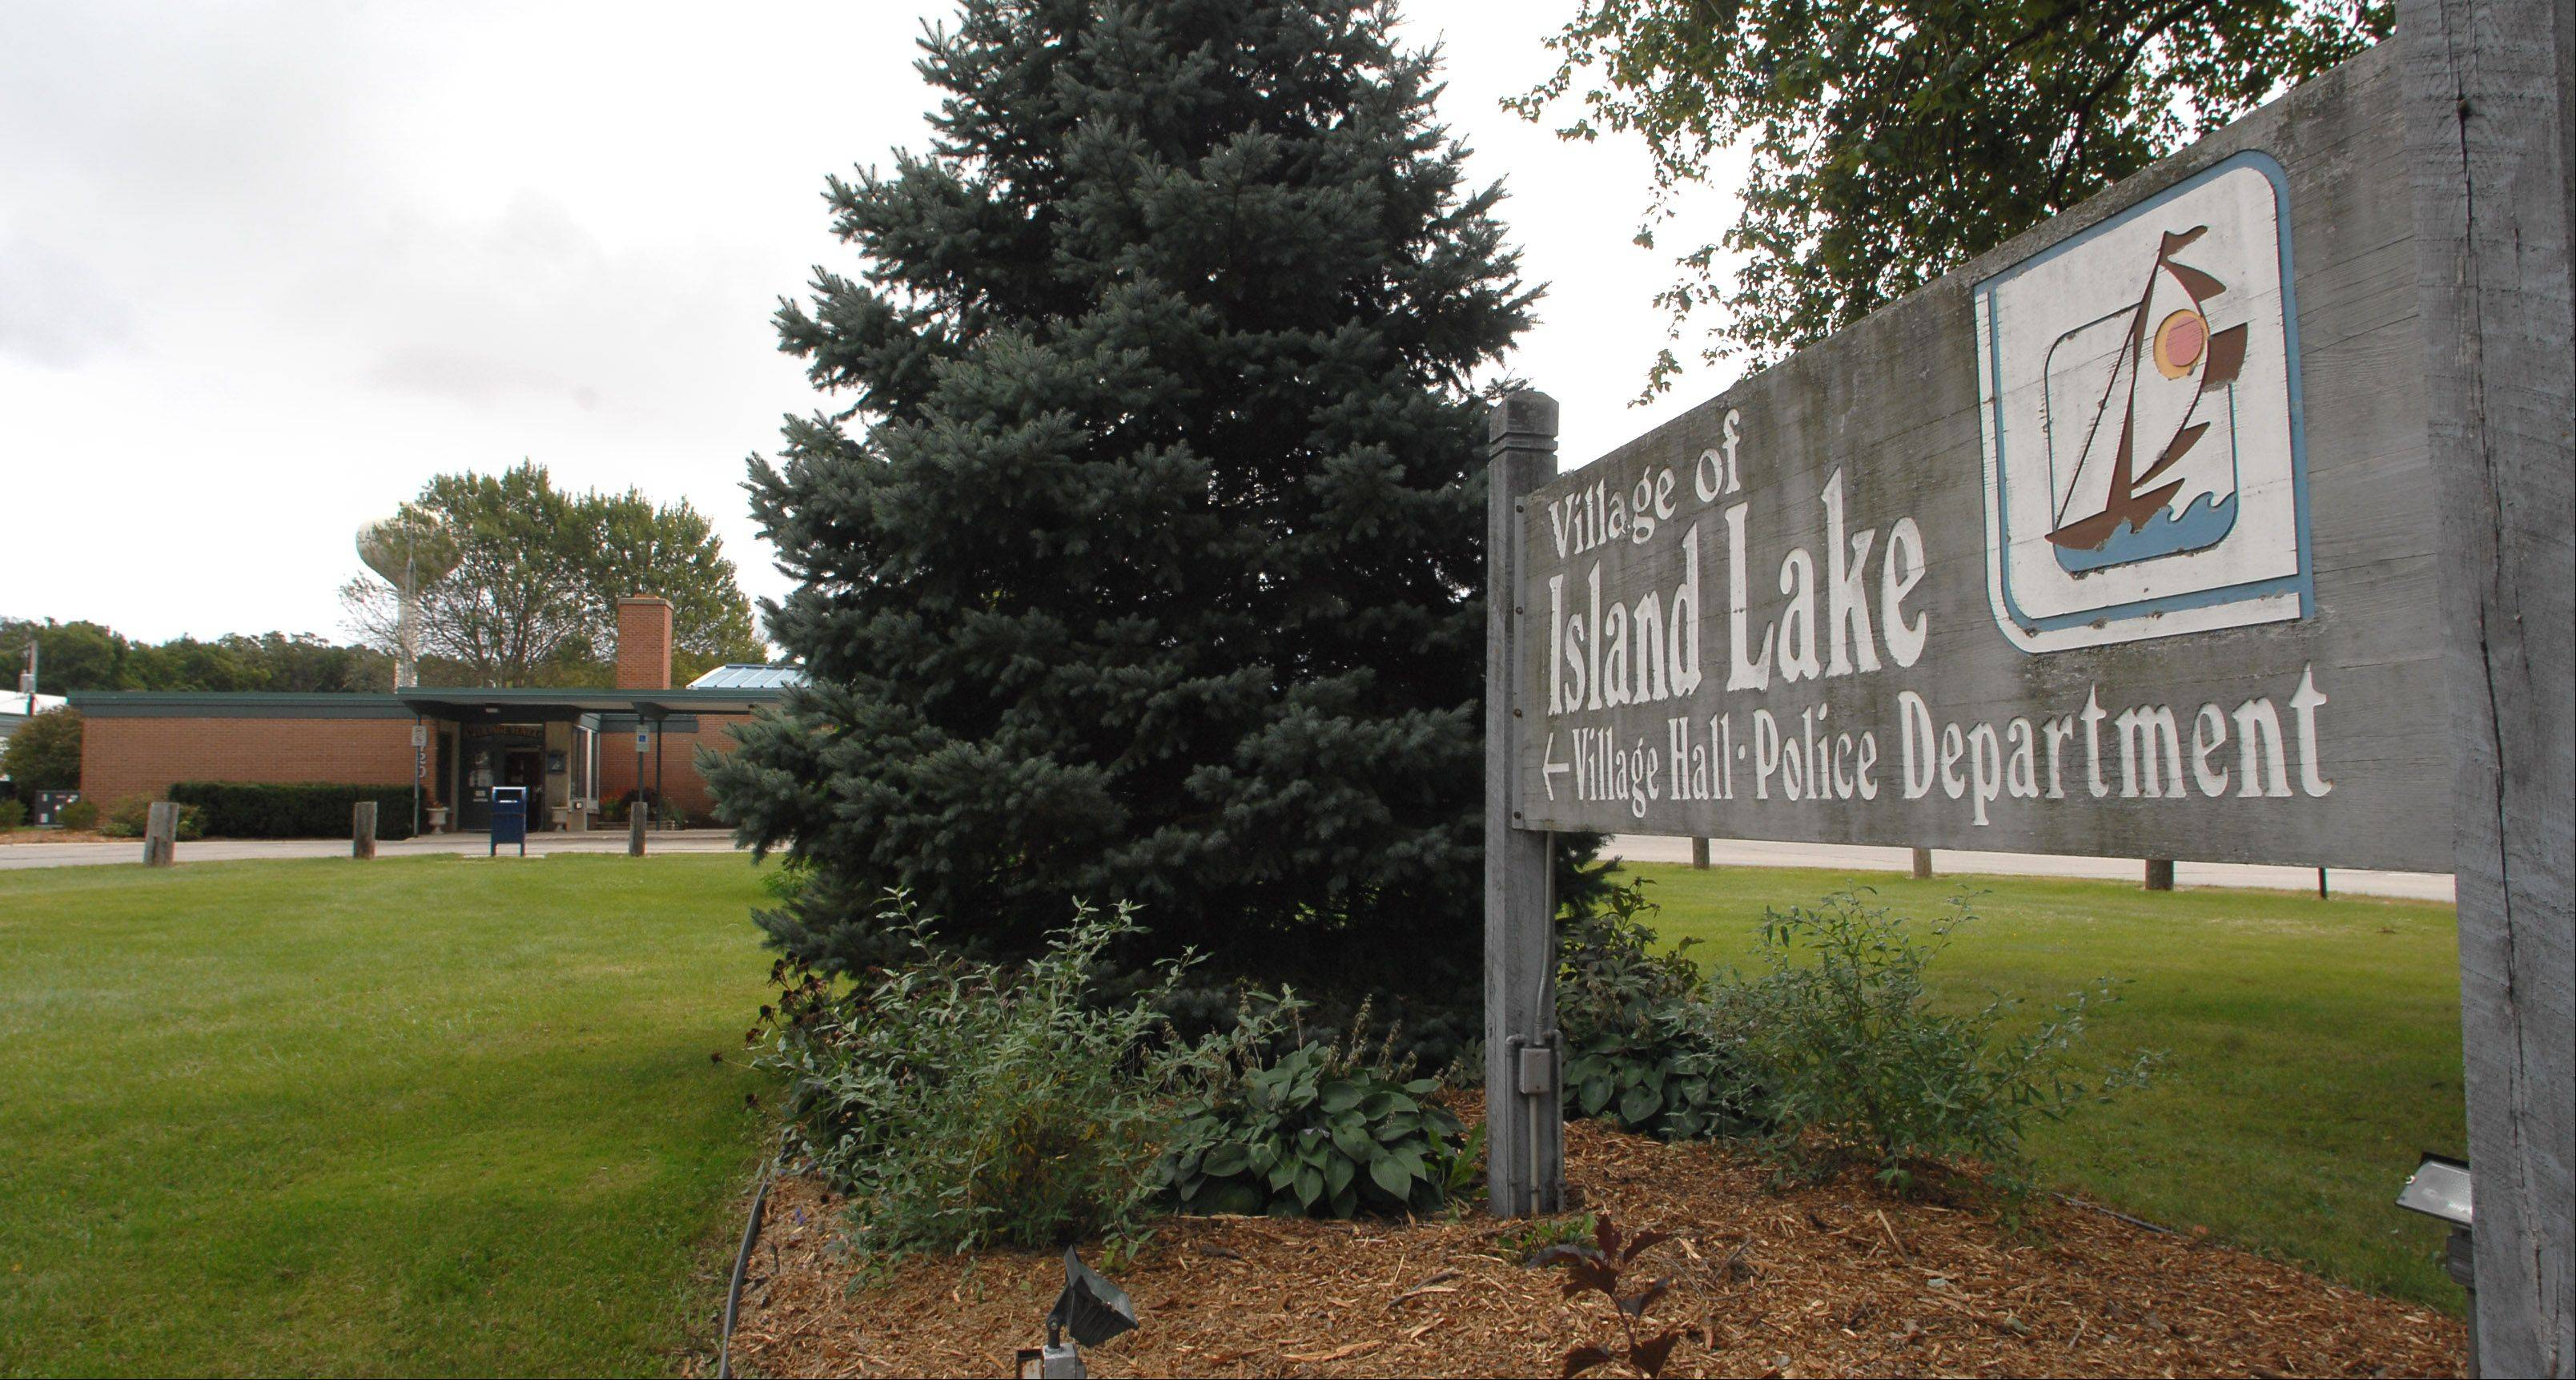 Voters could weigh in on Island Lake village hall proposal in November election